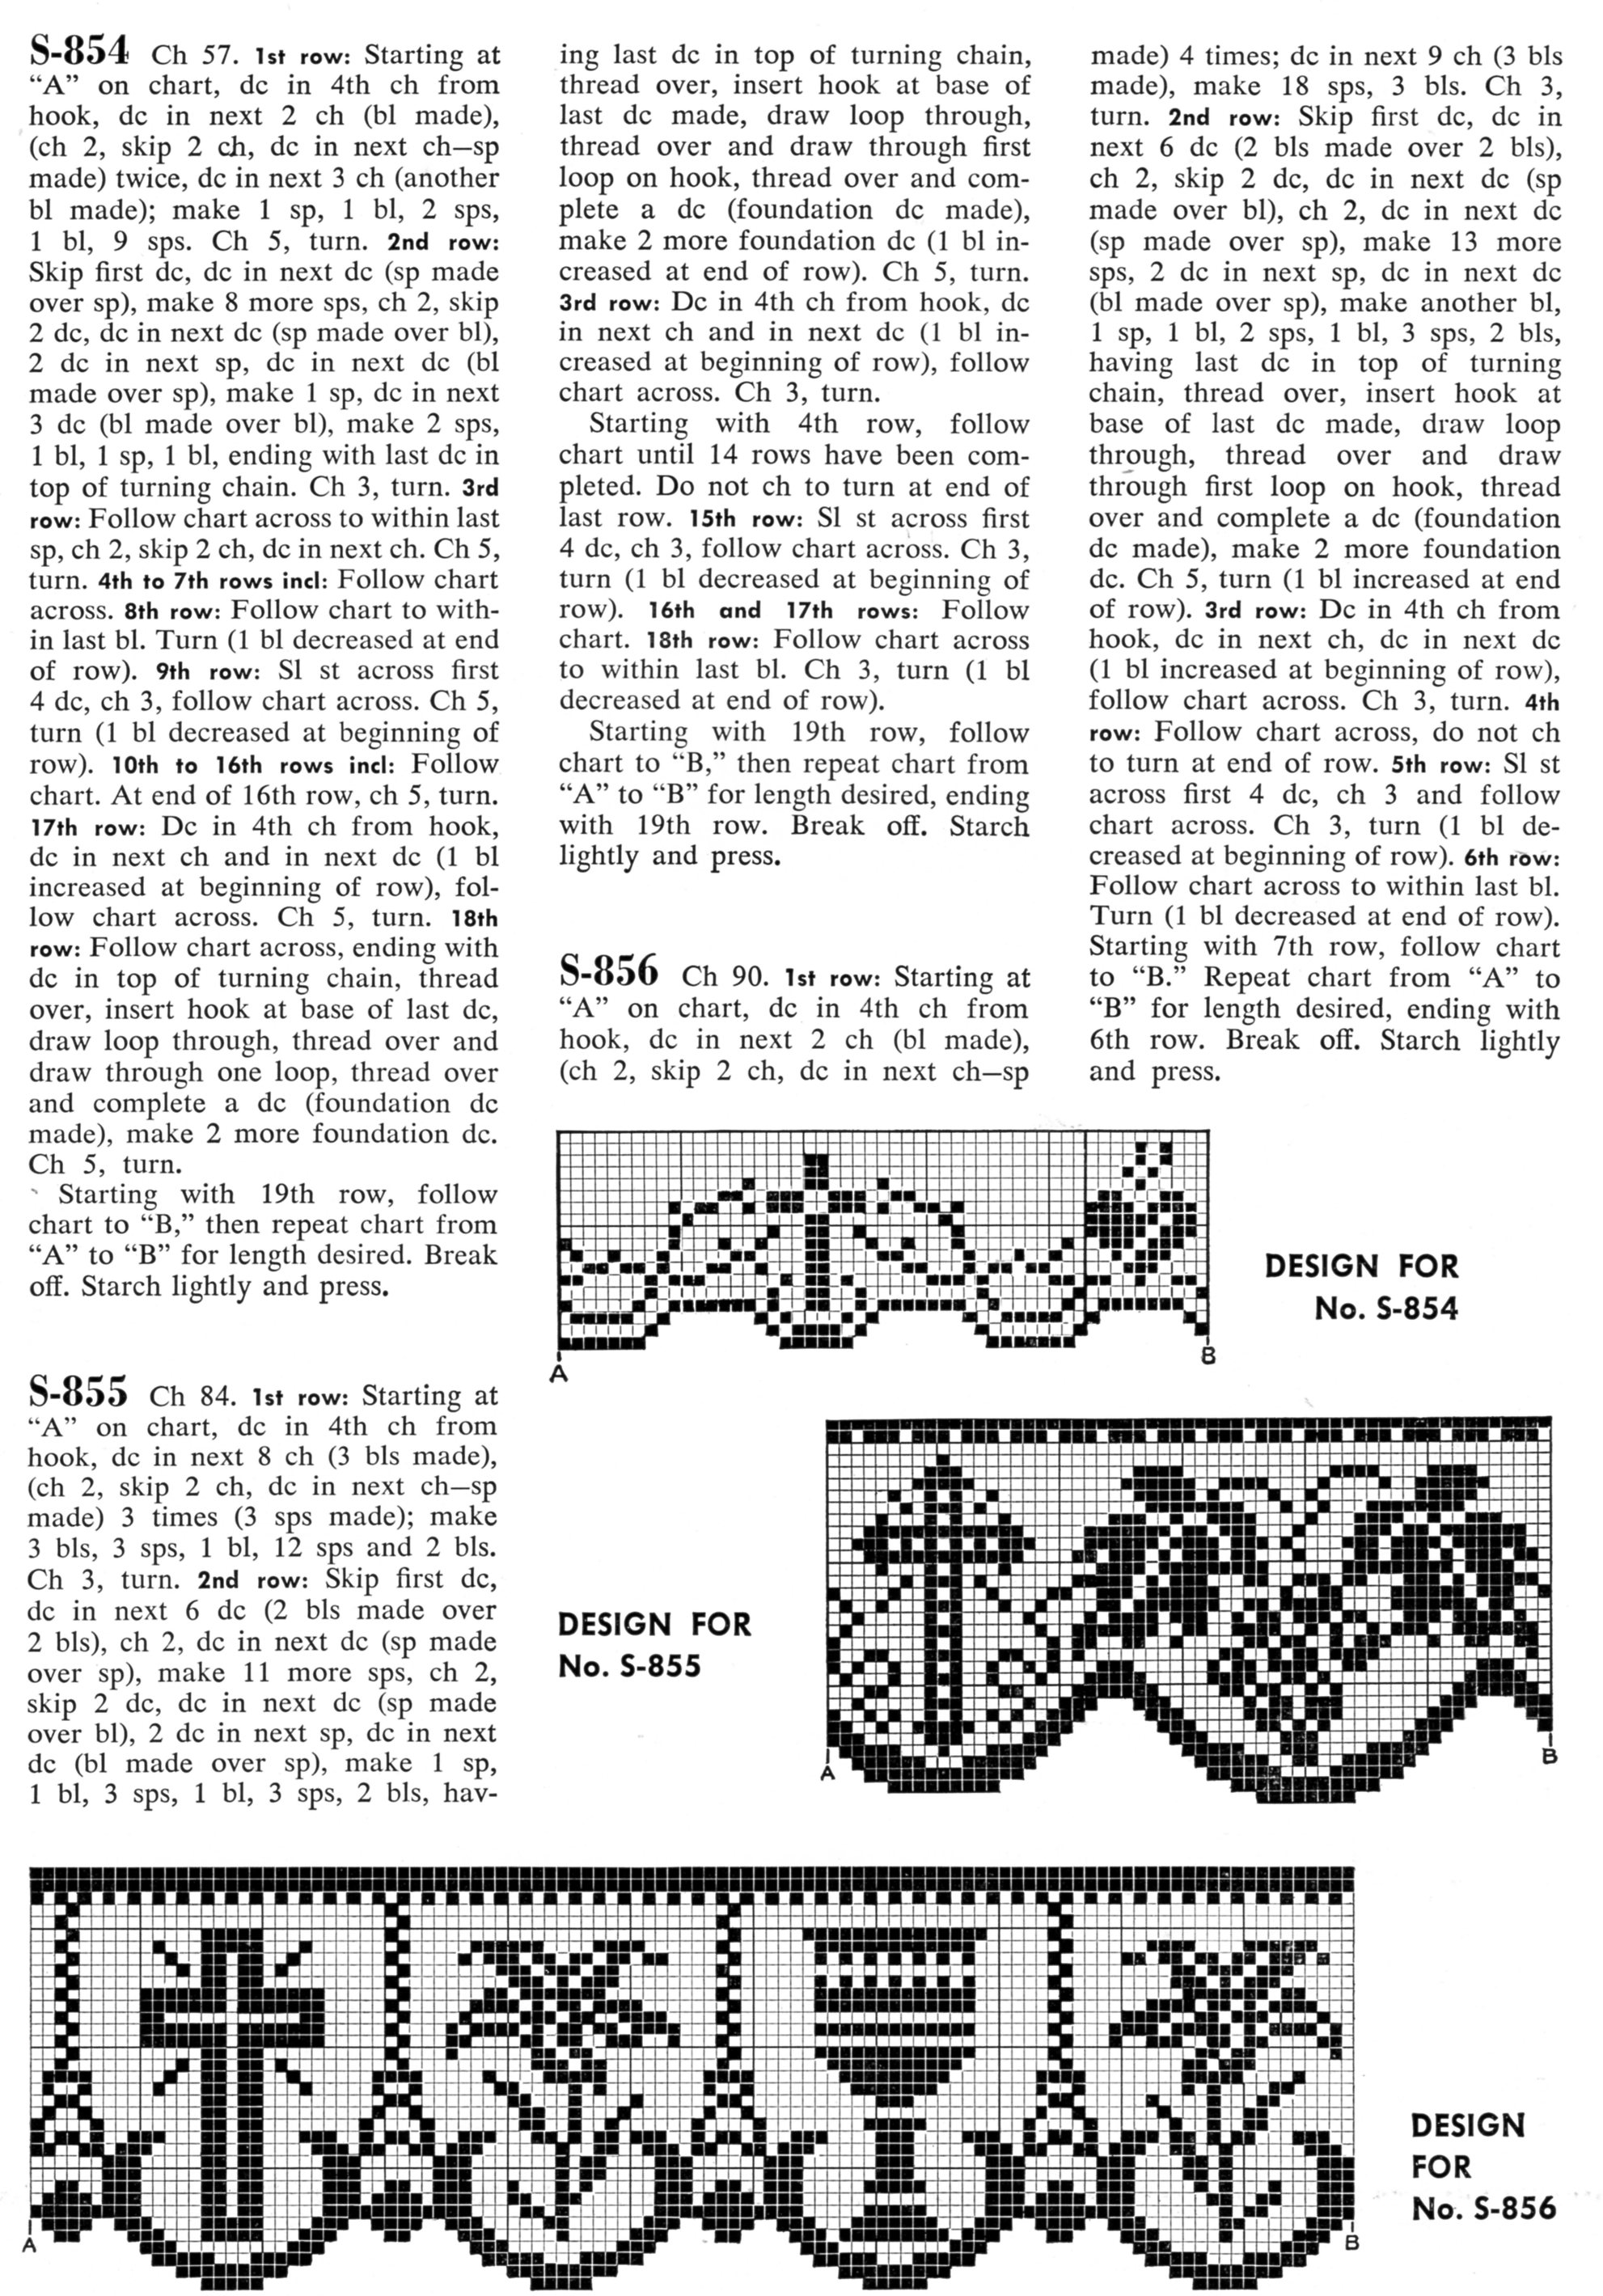 Filet crochet edging patterns for lace altar cloths and robes filet crochet edging patterns for altars and robes lily chalice vintage crafts and more bankloansurffo Gallery